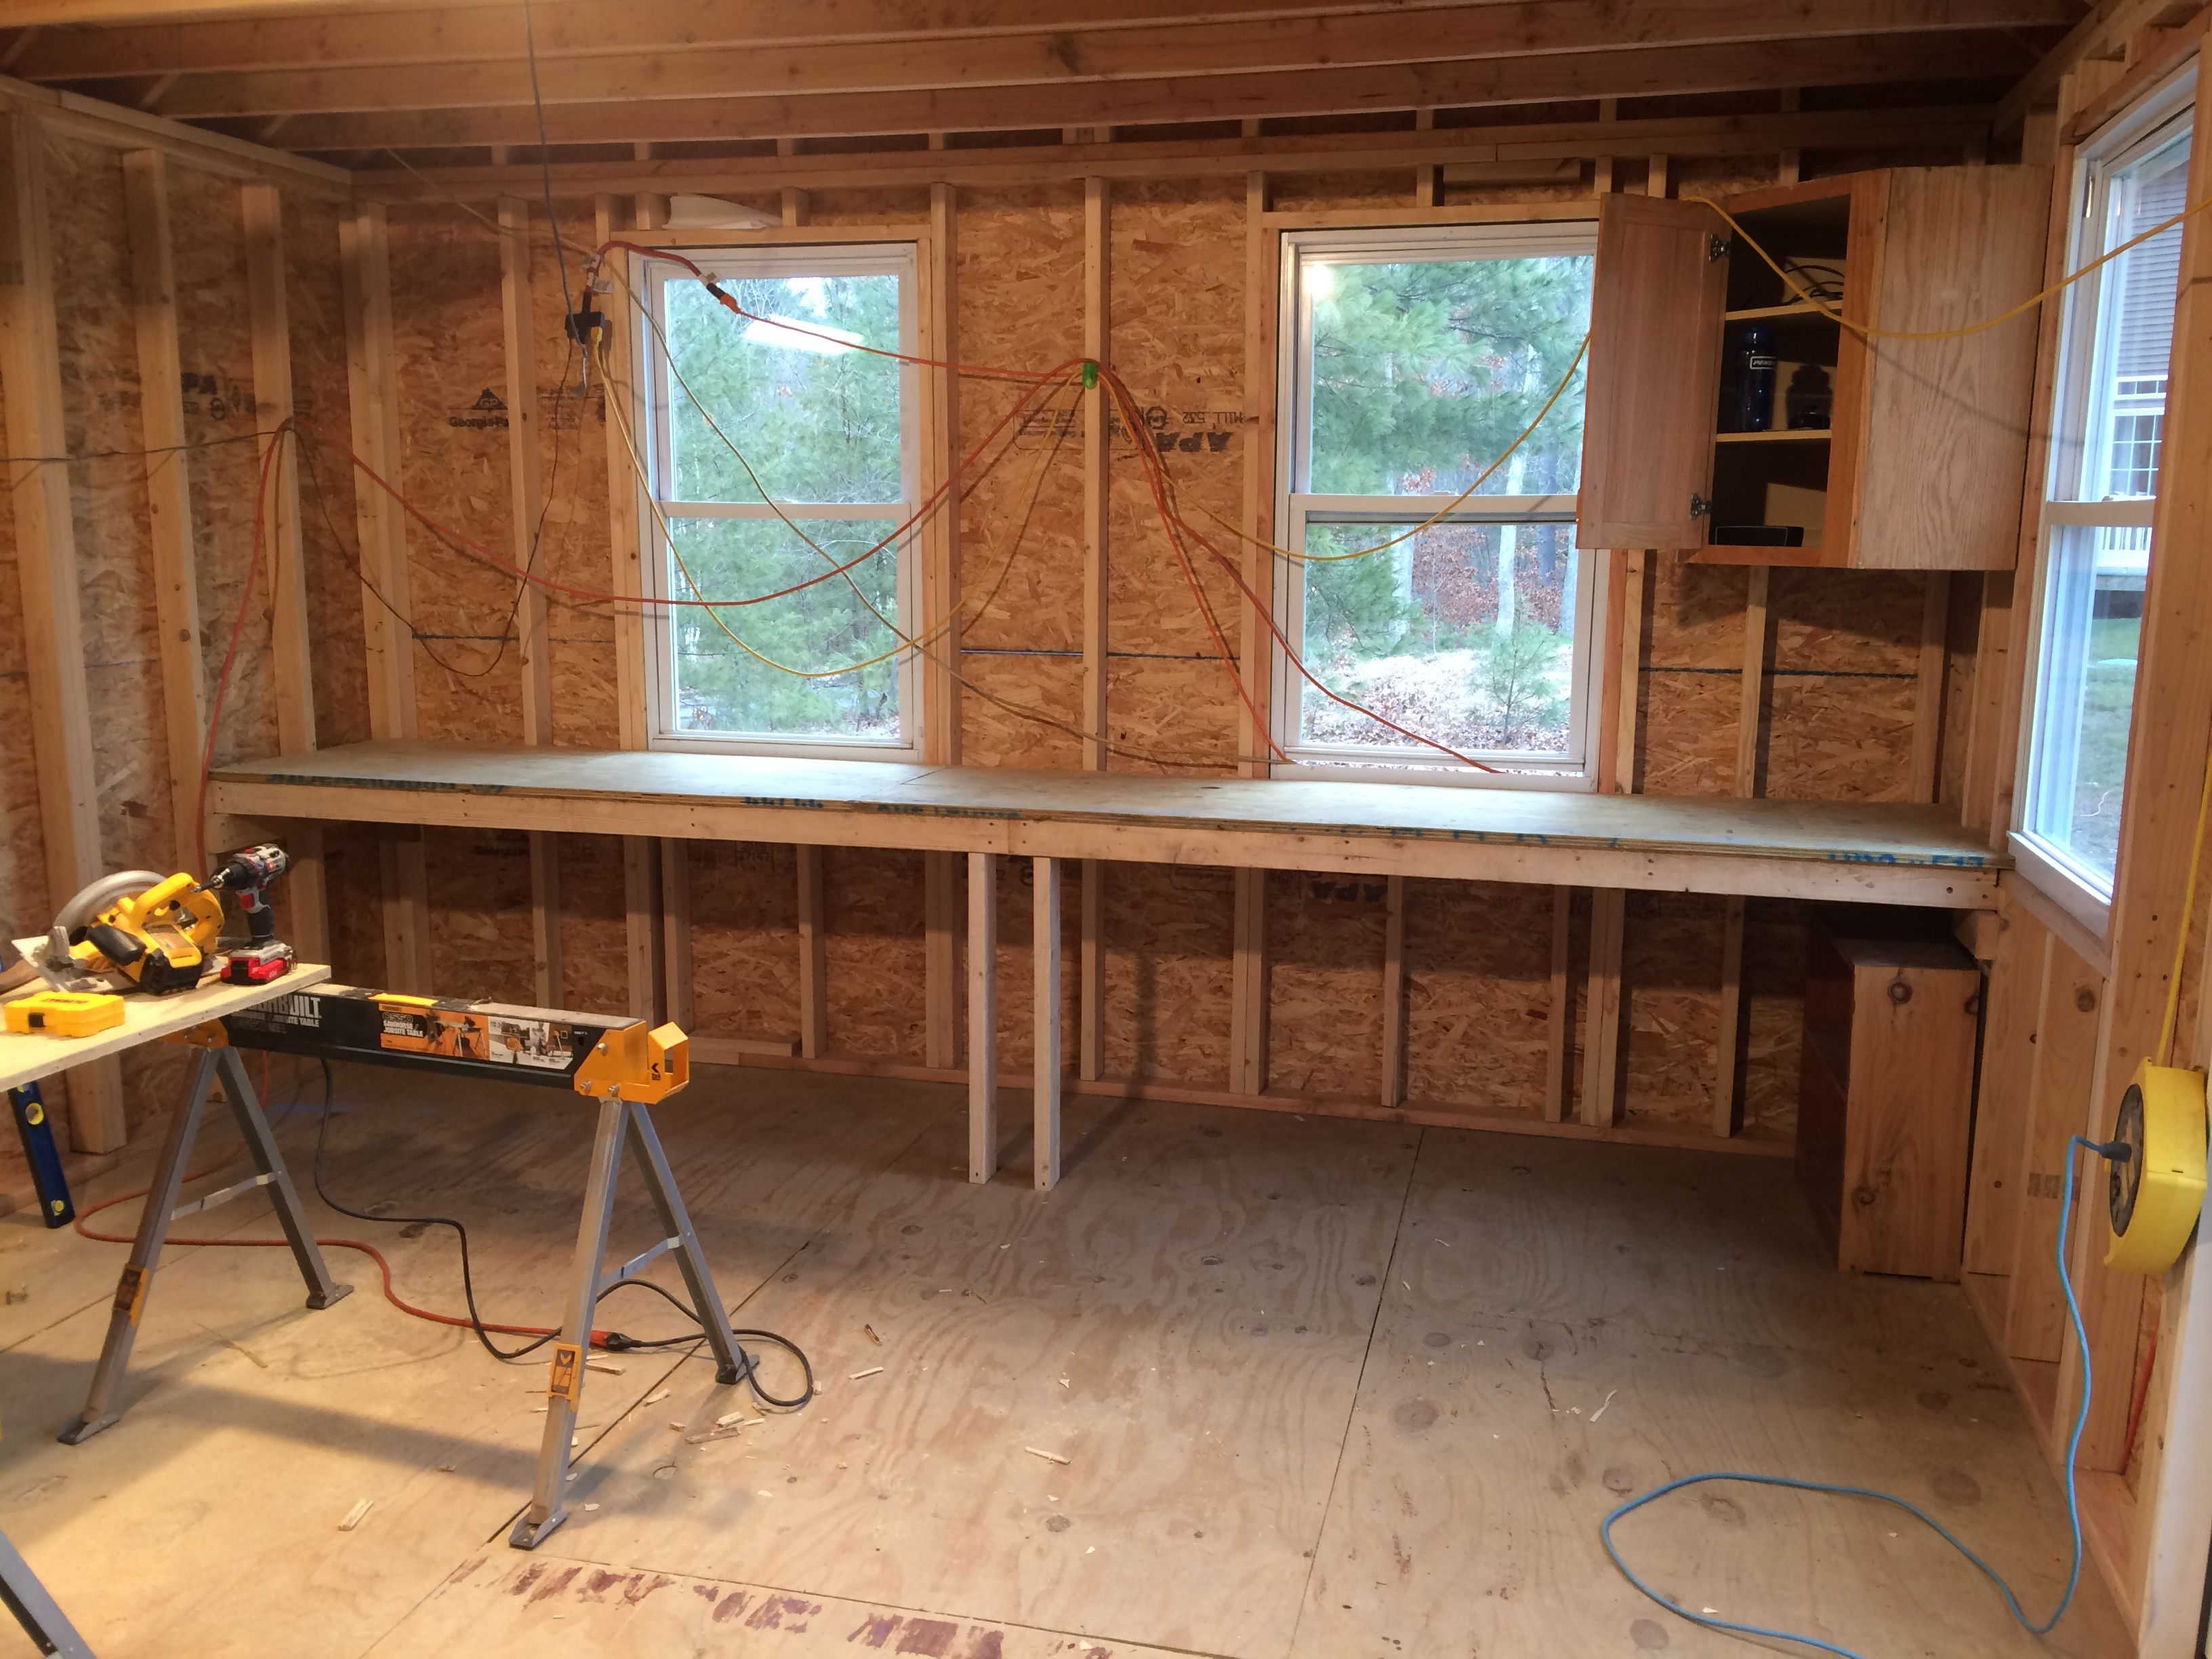 Easy Workbench Build   Shed storage, Car shed, Shed ...